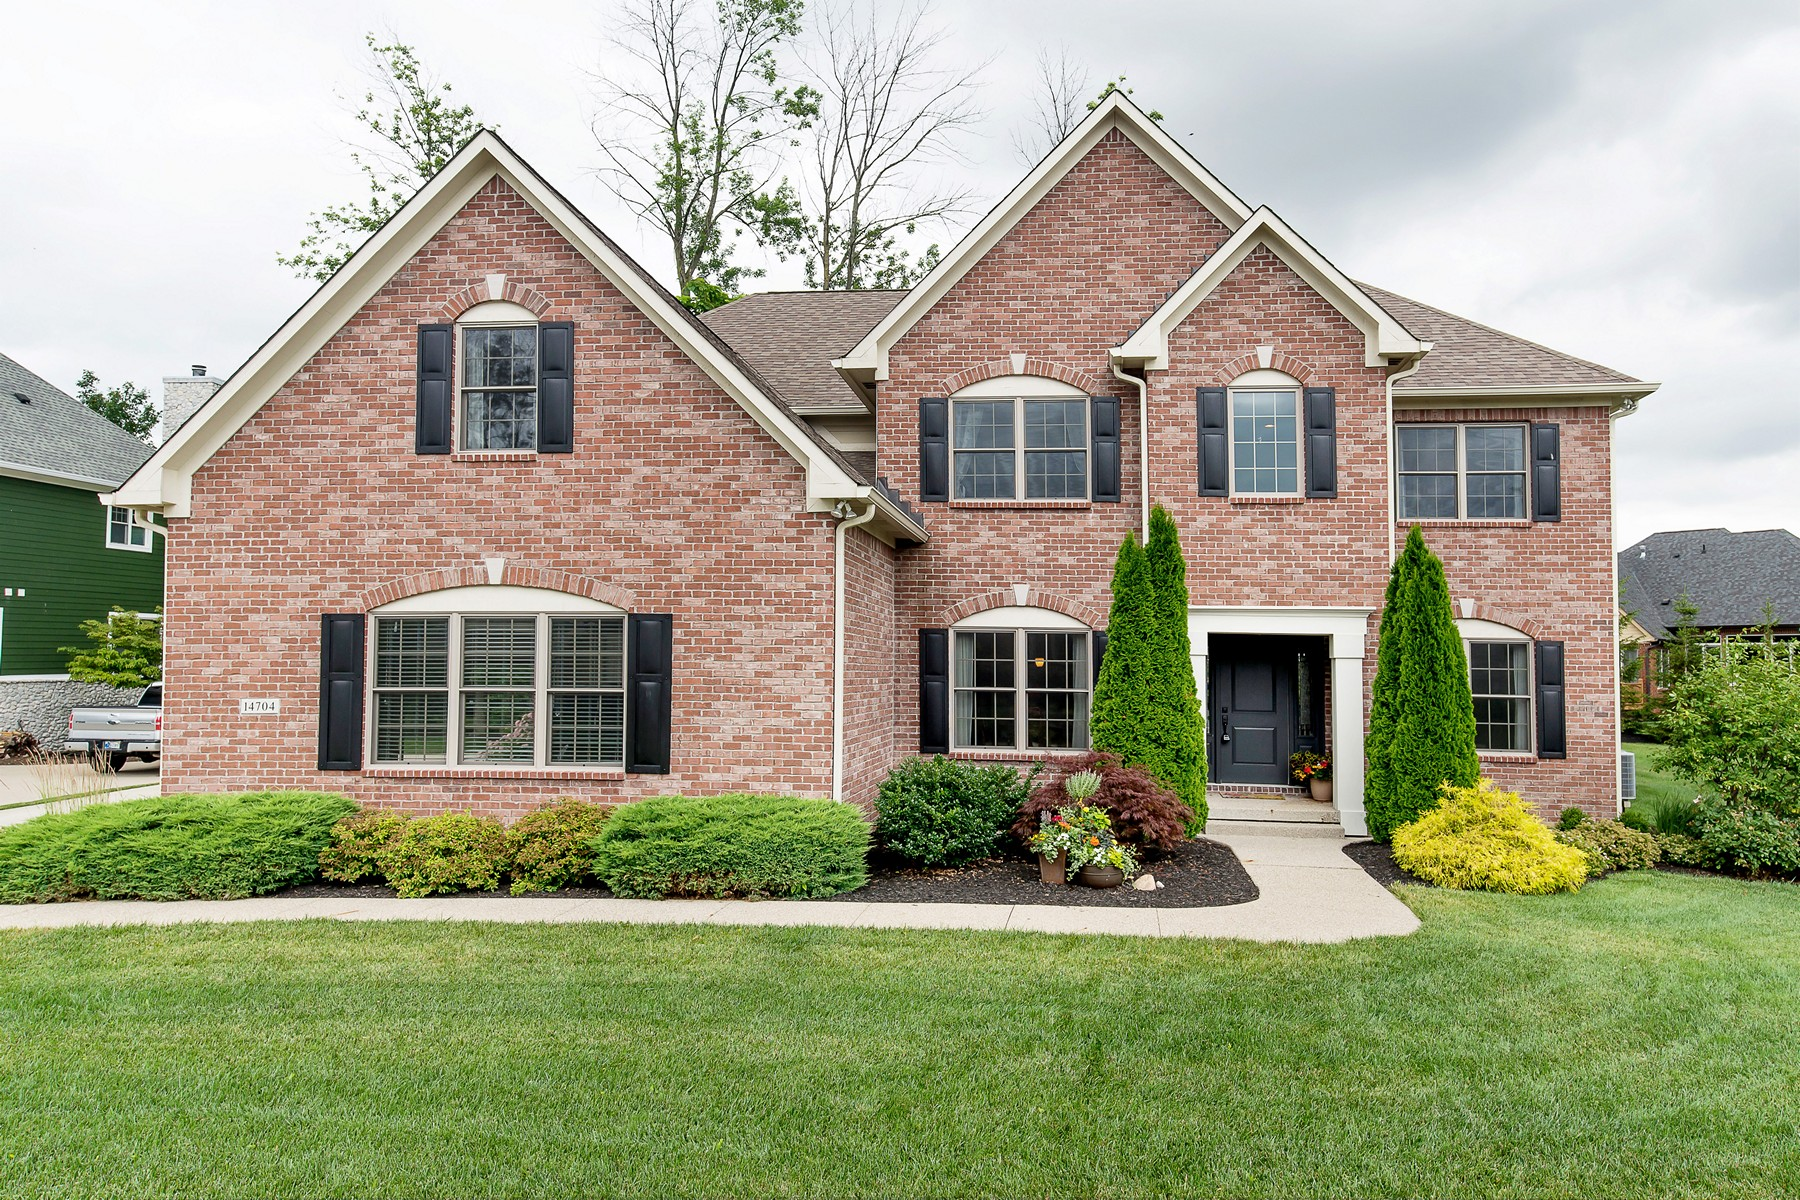 Single Family Home for Sale at Quality Custom Home on Quiet Street 14704 Whispering Breeze Drive Fishers, Indiana 46037 United States